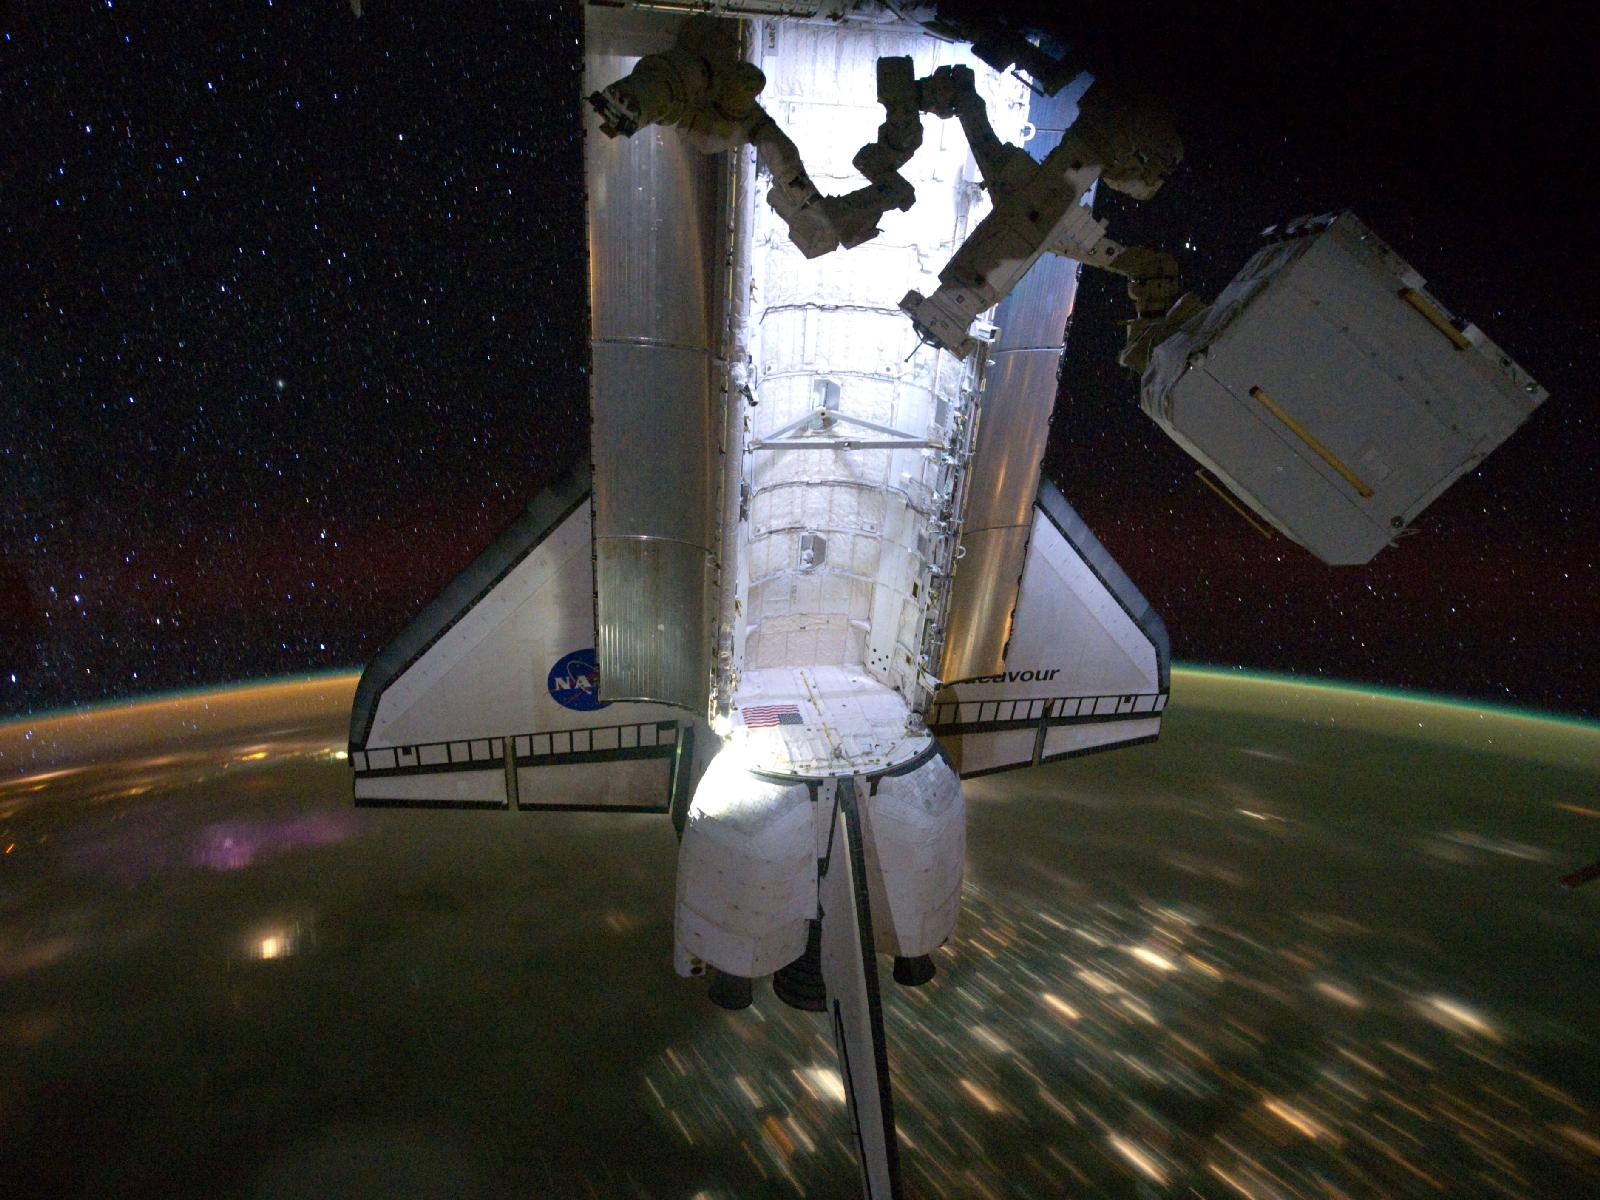 Shuttle Endeavour, the Space Station and Earth